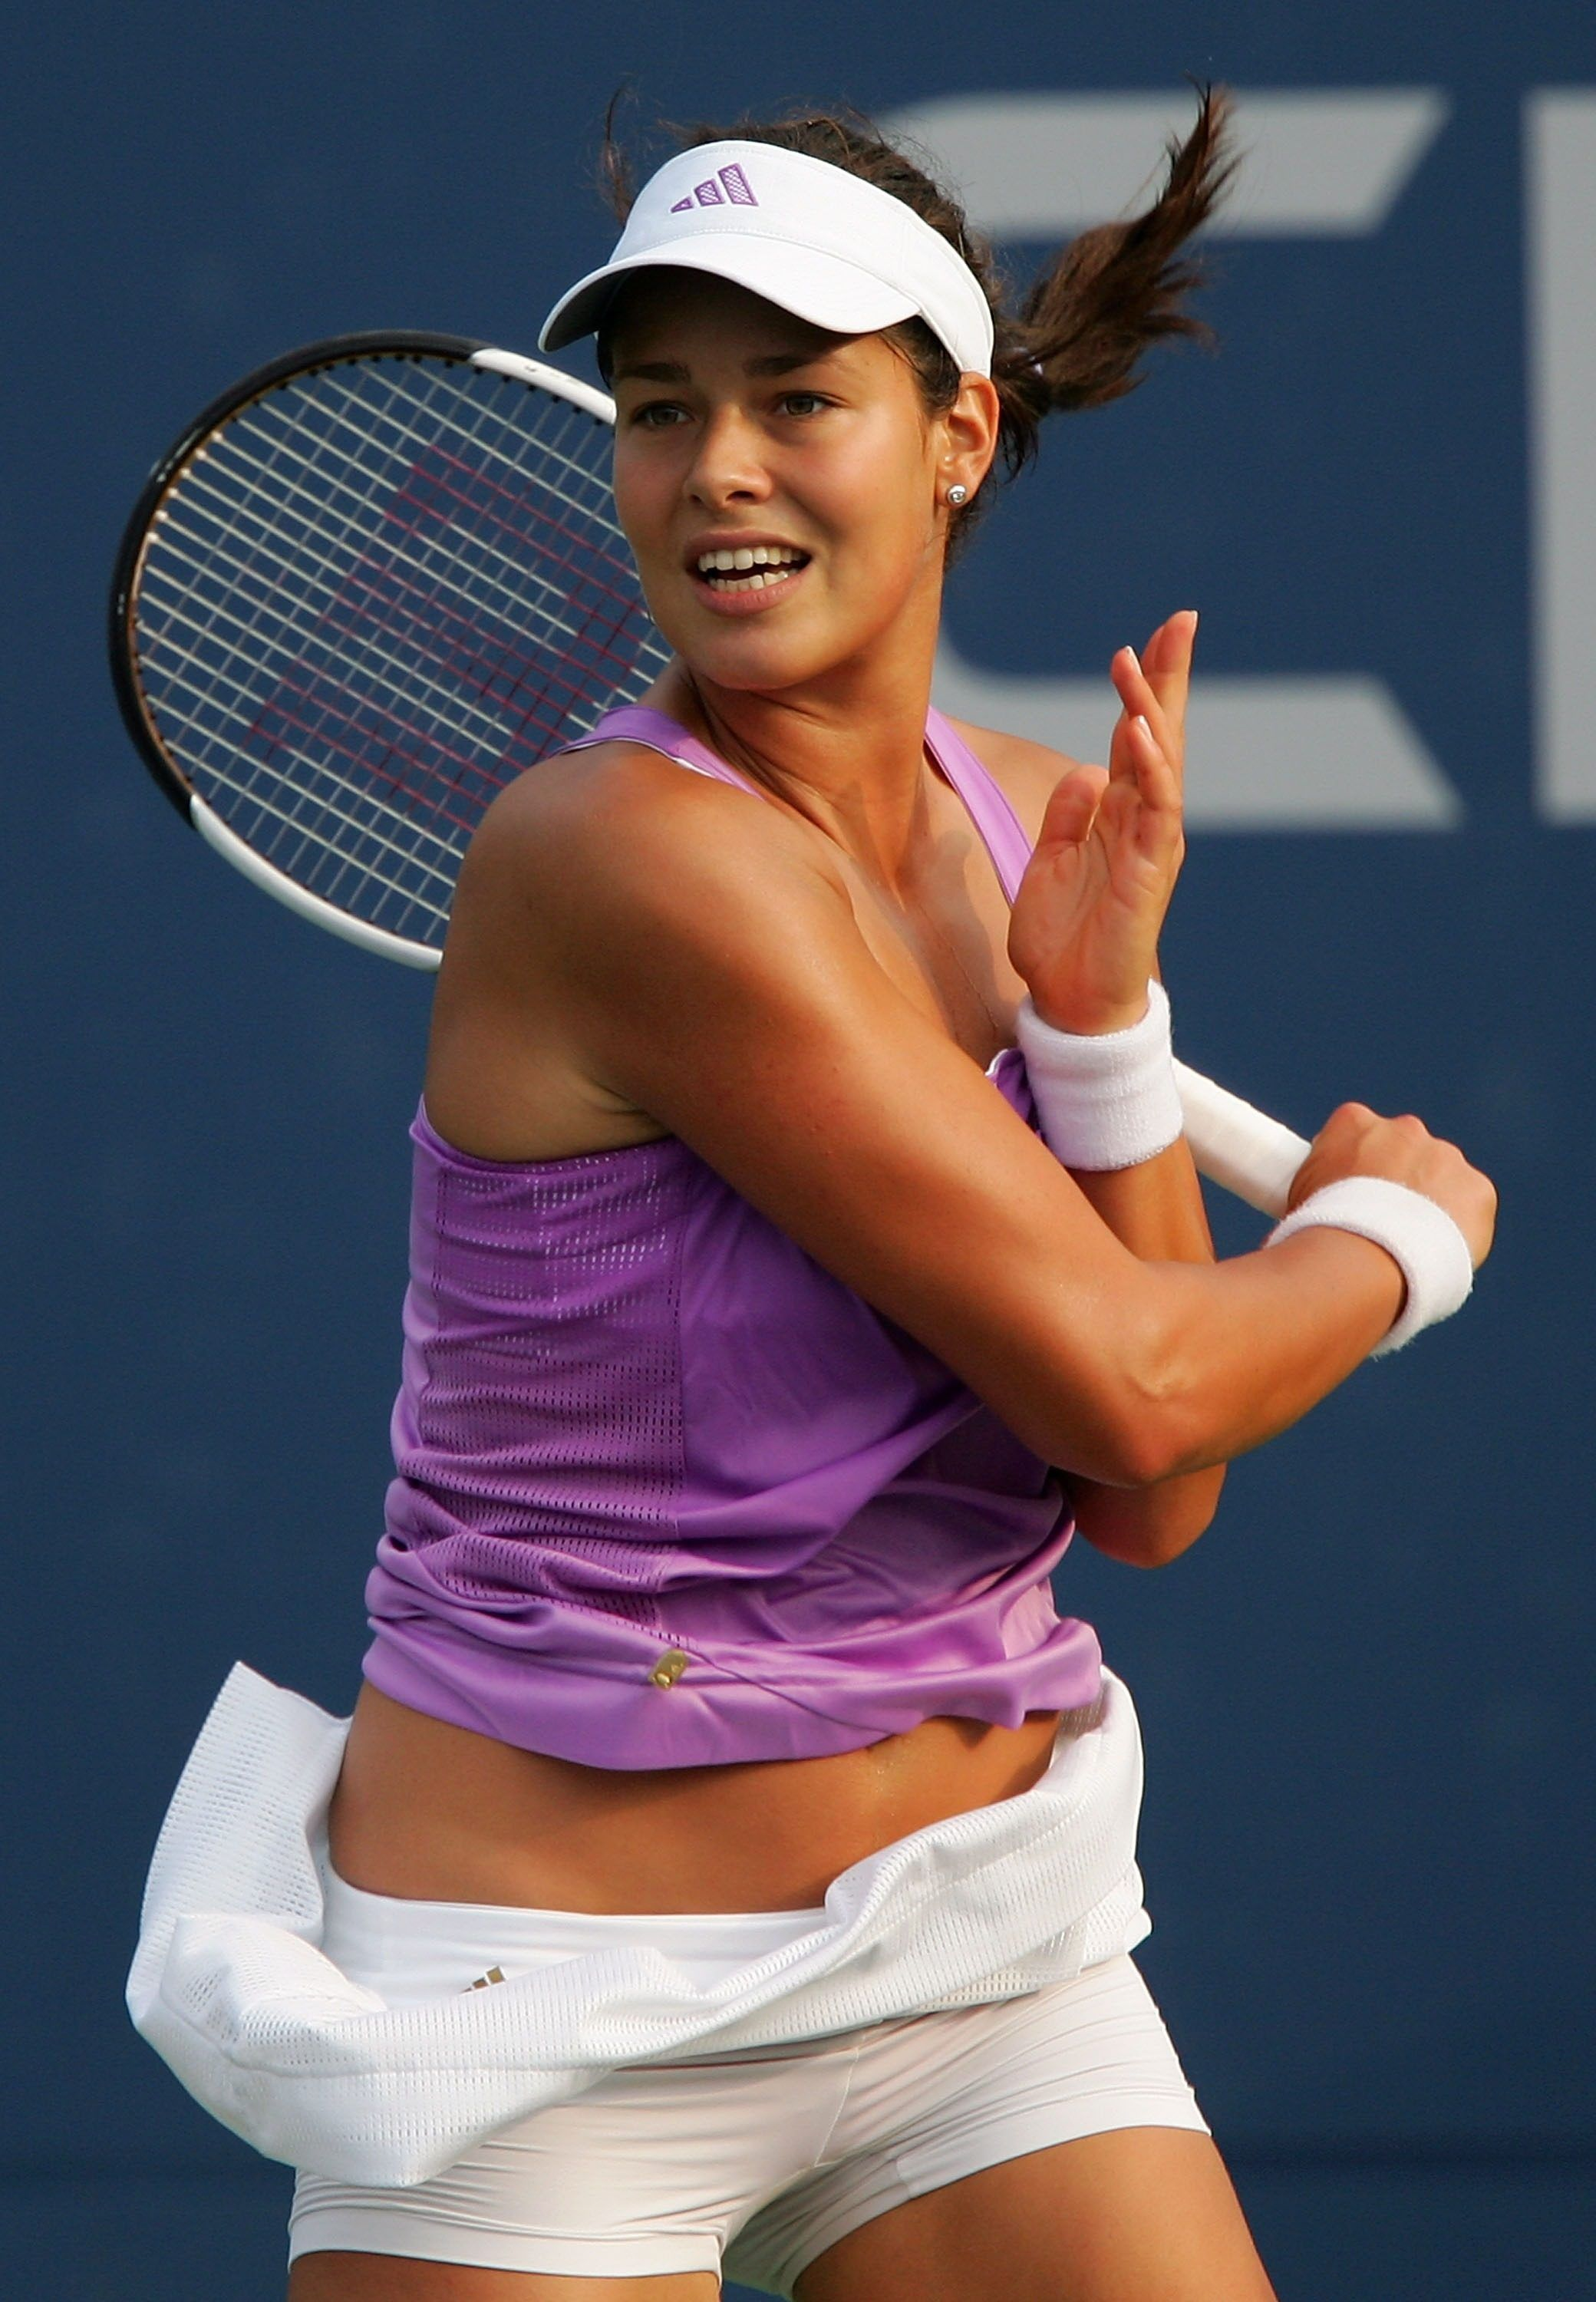 Ana ivanovic photos upskirt